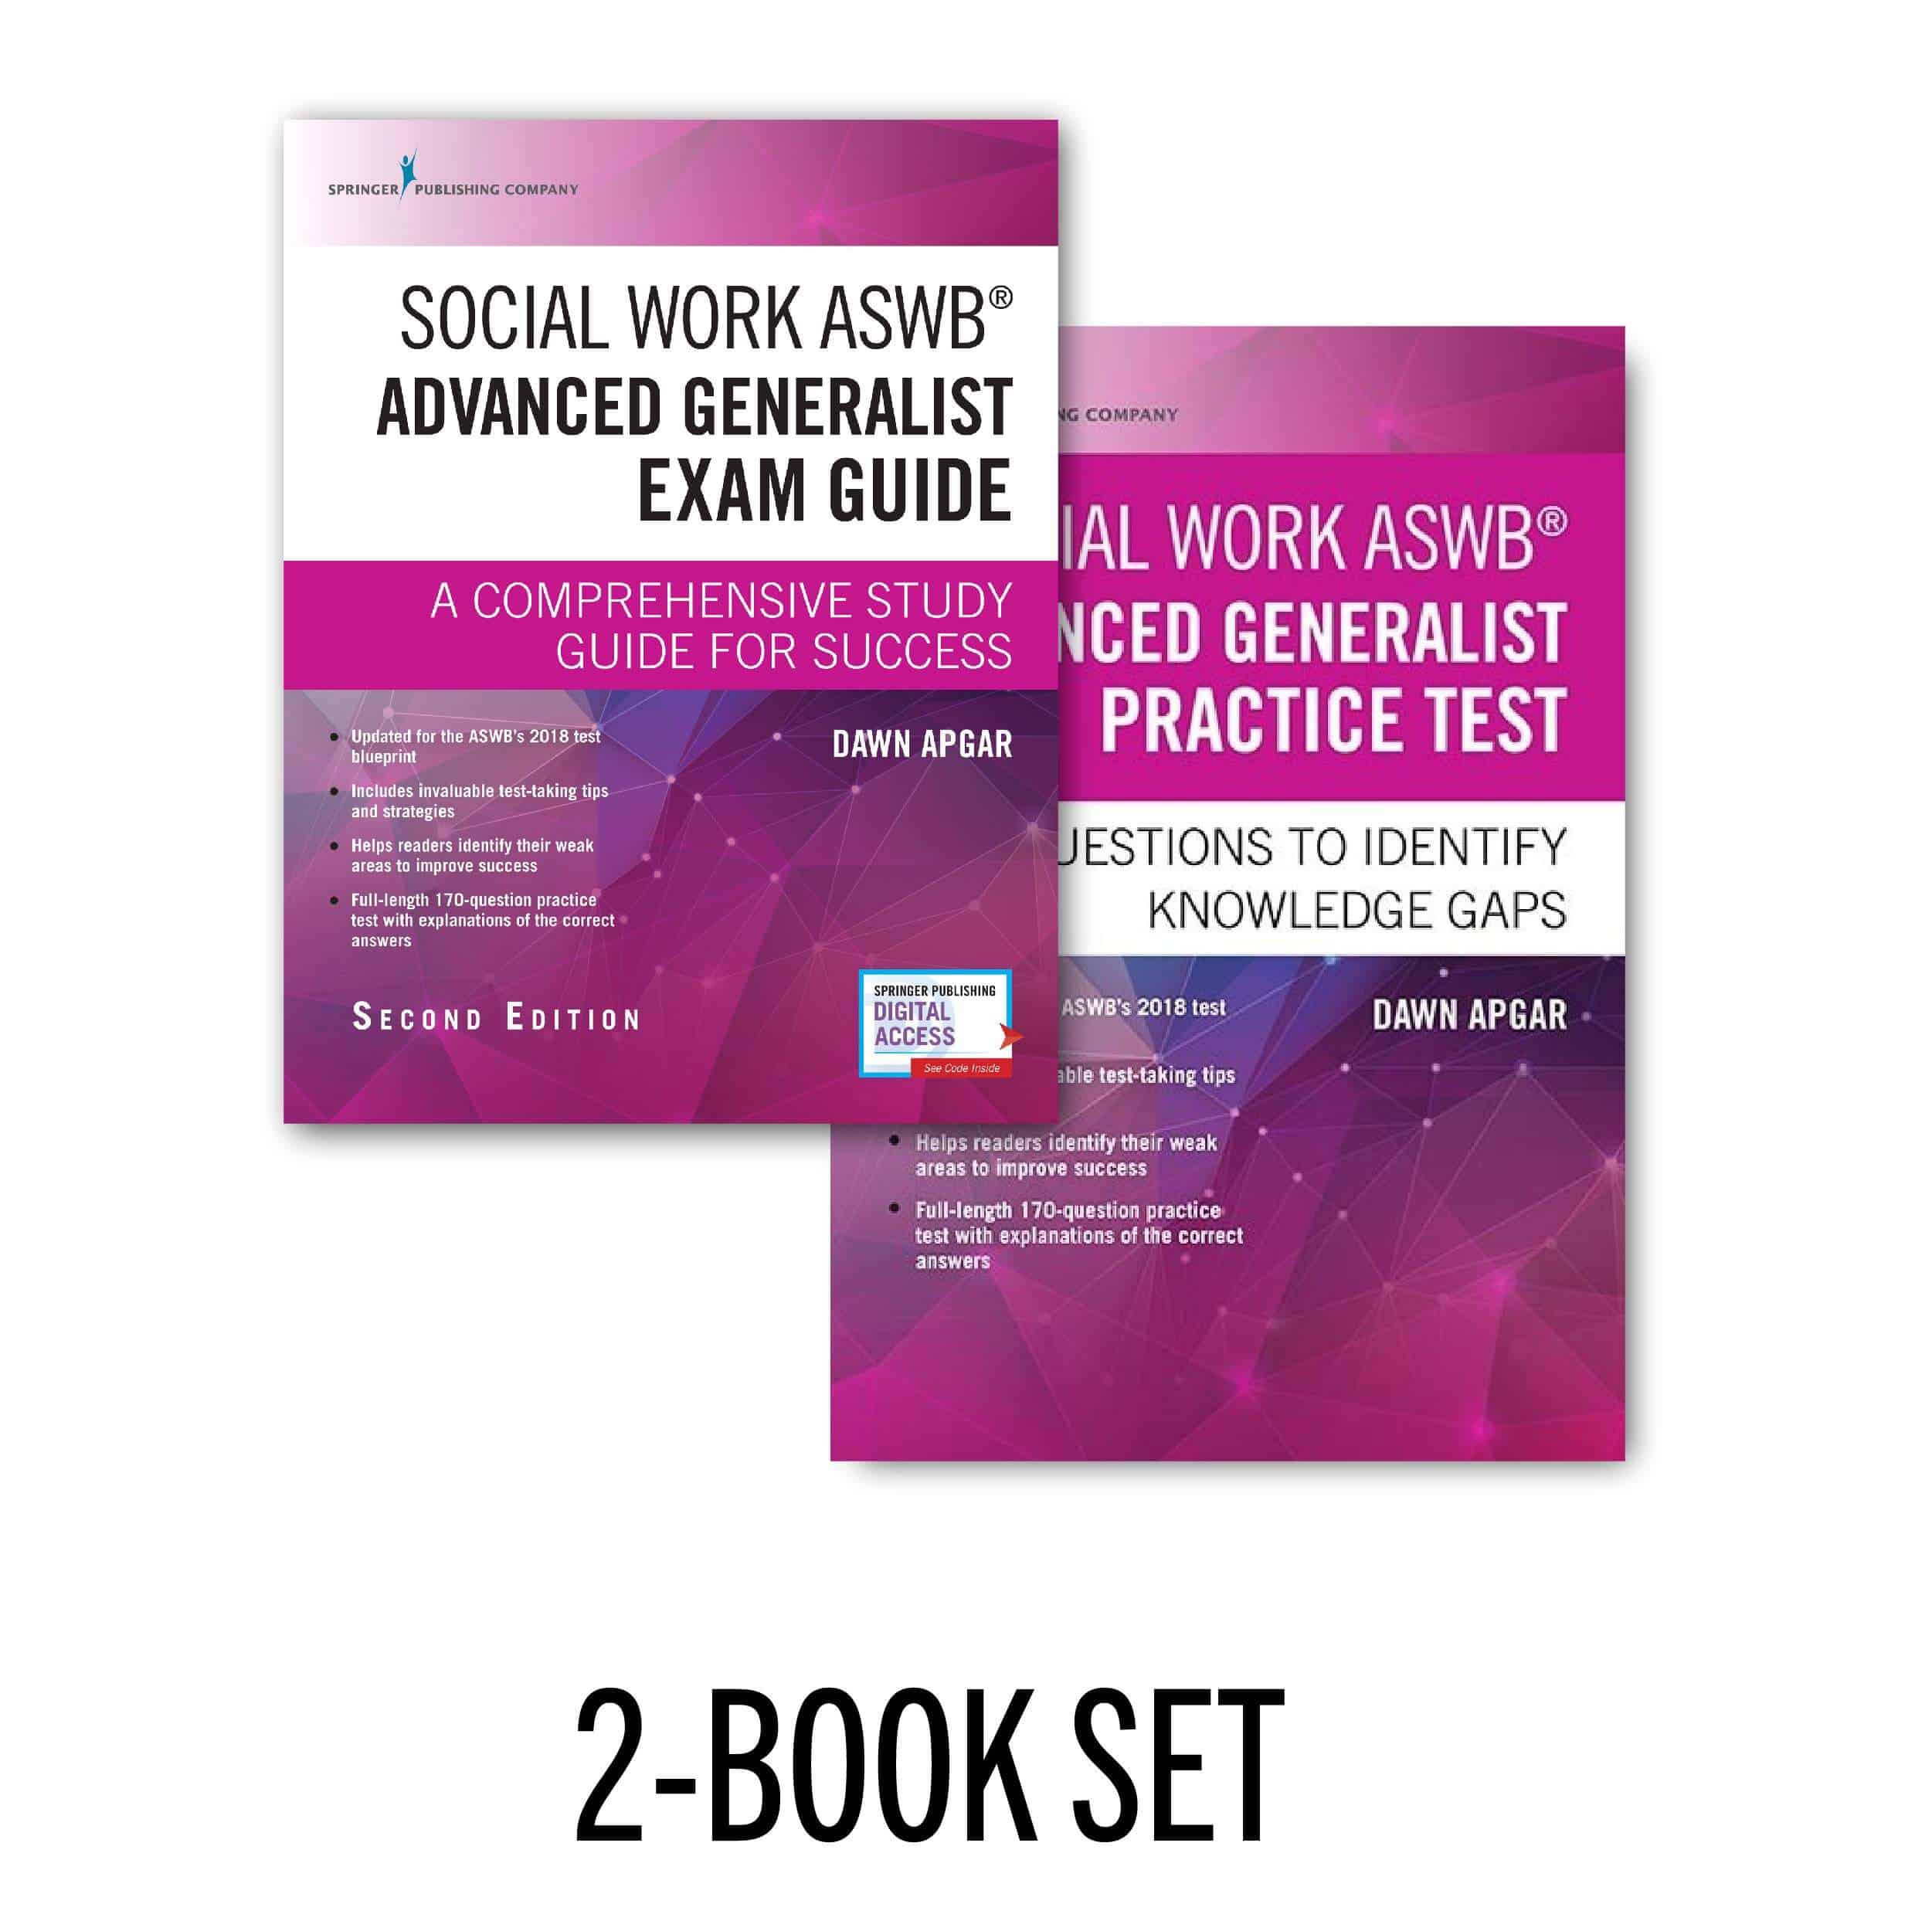 An image of the Social Work ASWB Advanced Generalist Exam Guide and Practice Test